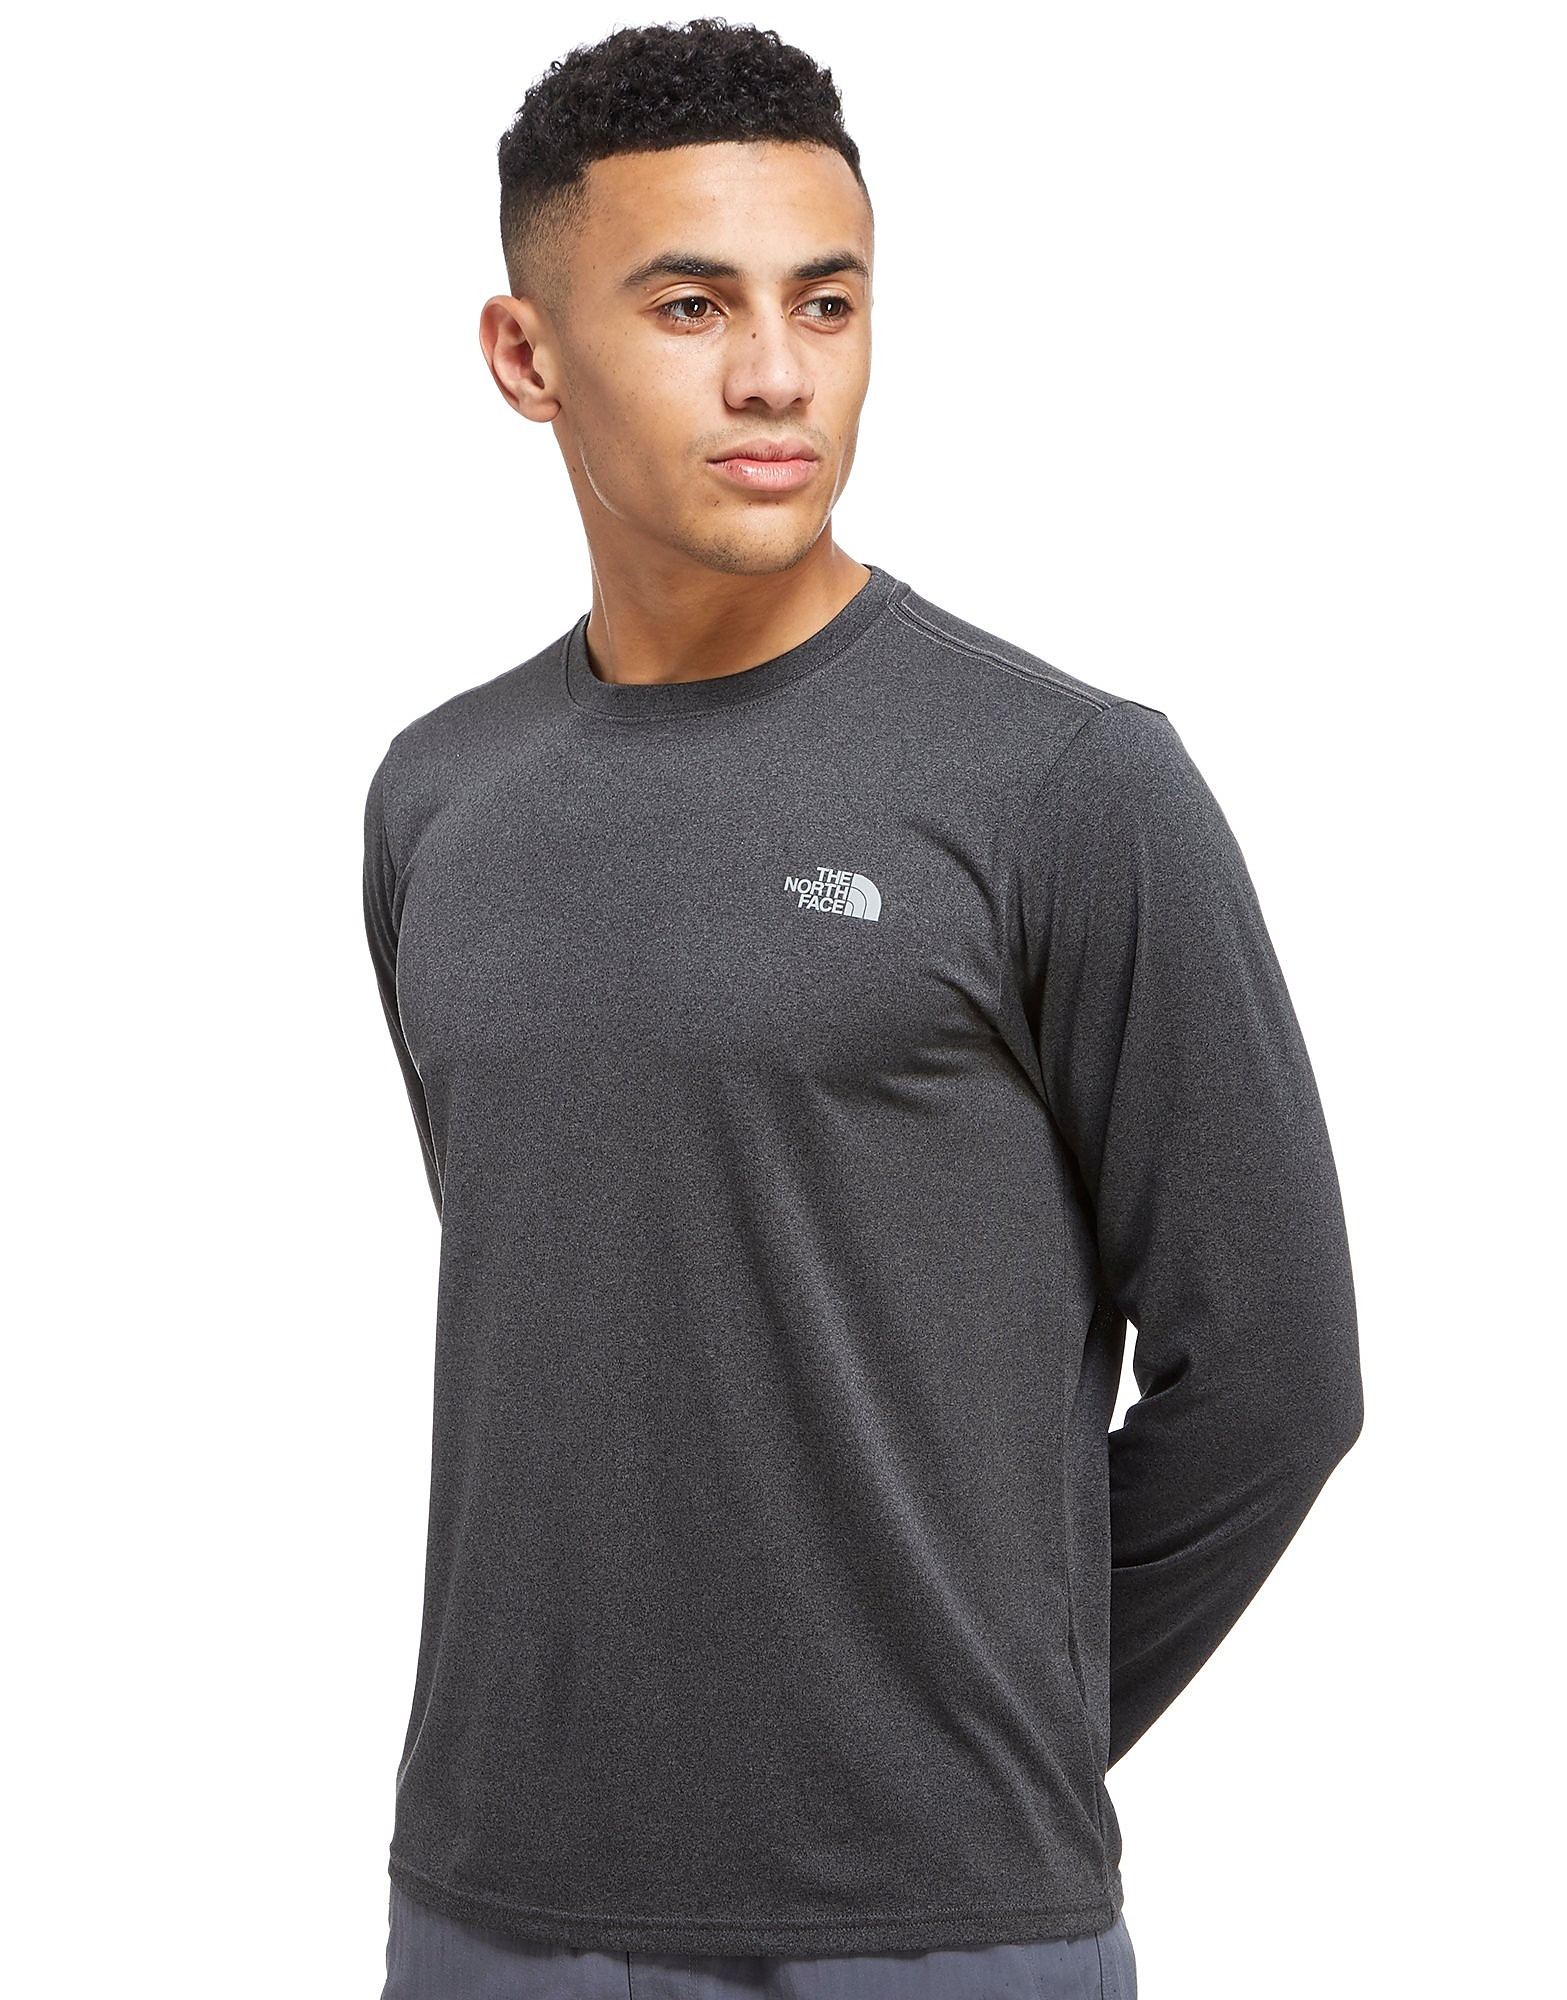 The North Face MA Reaxion Long-Sleeved T-Shirt